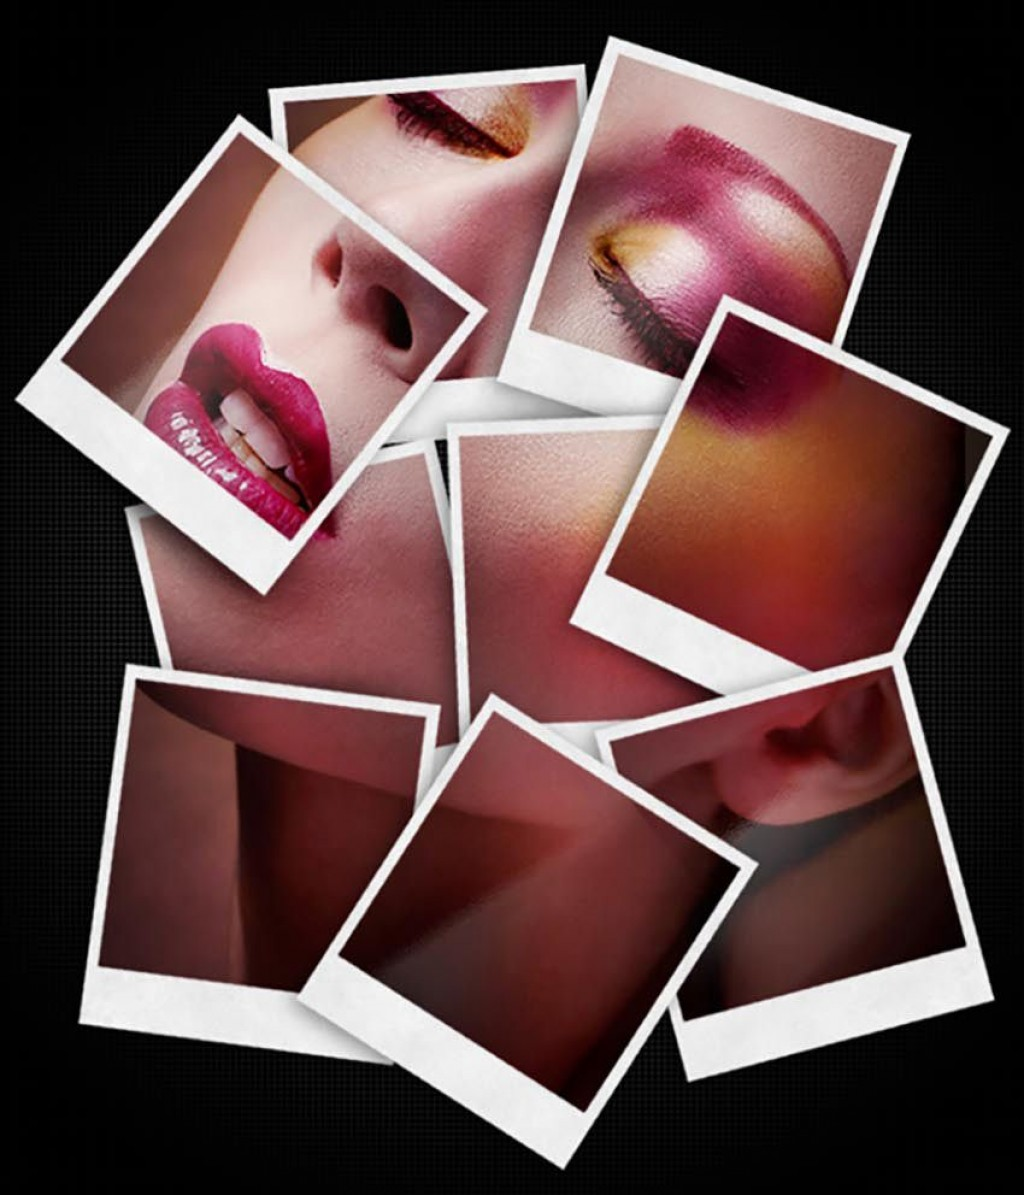 004 Surprising Picture Collage Maker Template Free Download High Definition  PhotoLarge